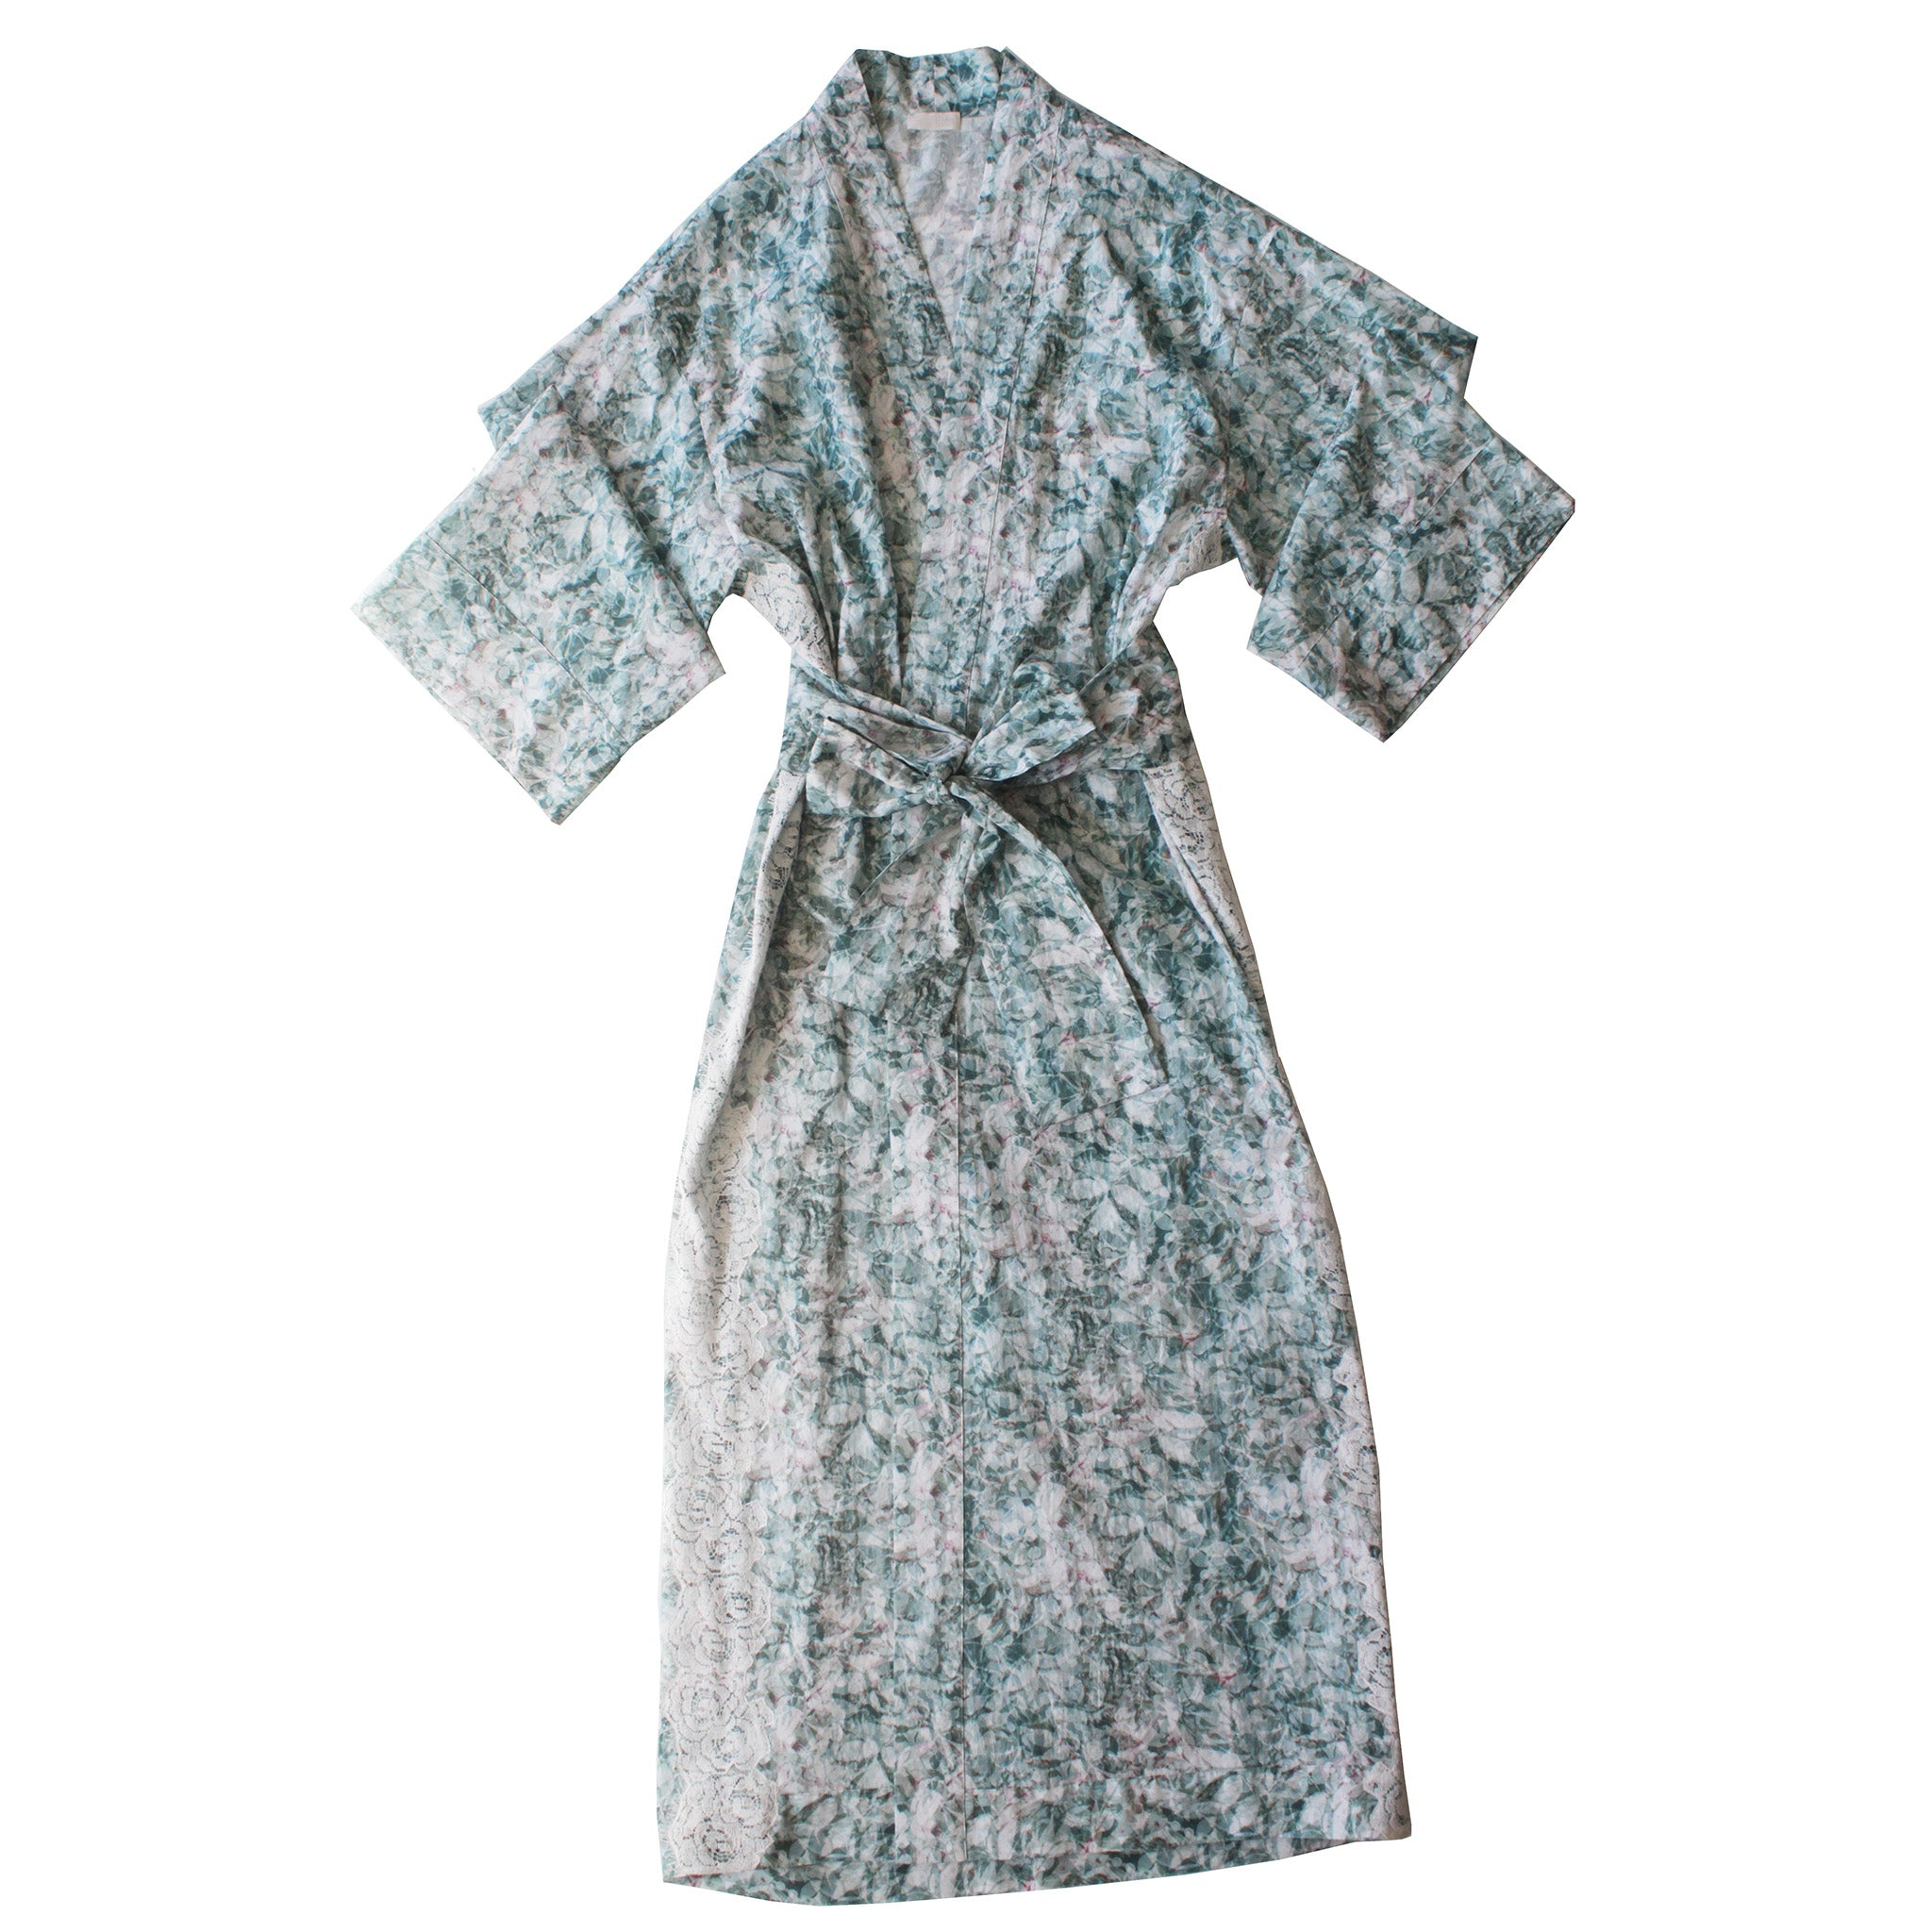 Asteria Kimono Robe in Tiers of Light Liberty Print Cotton